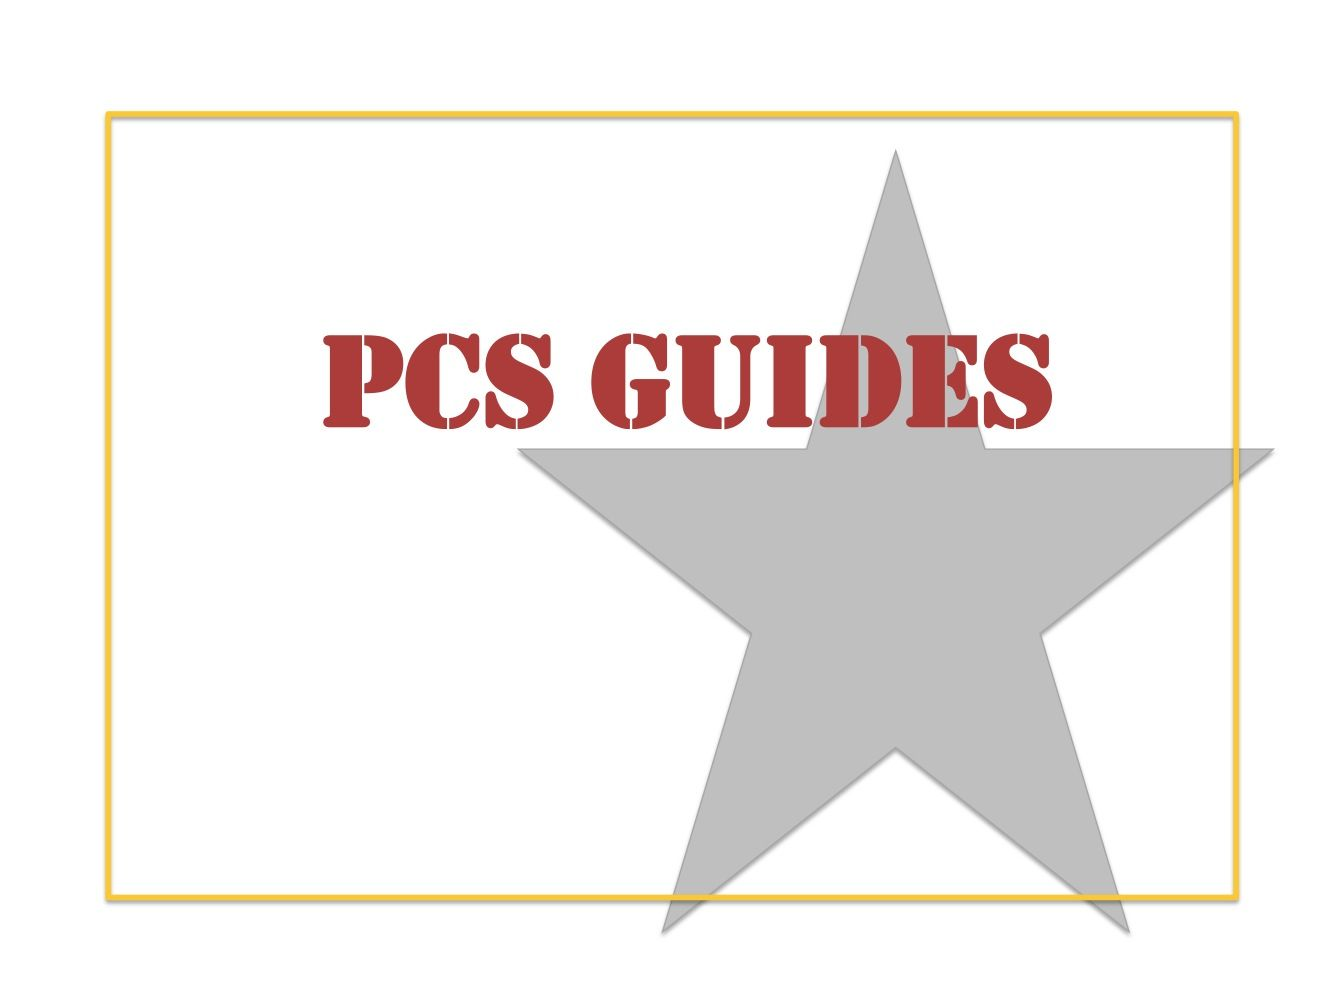 PCS Guides for military families. These guides are put together from comments from other military families. They will reduce your stress before your next PCS.